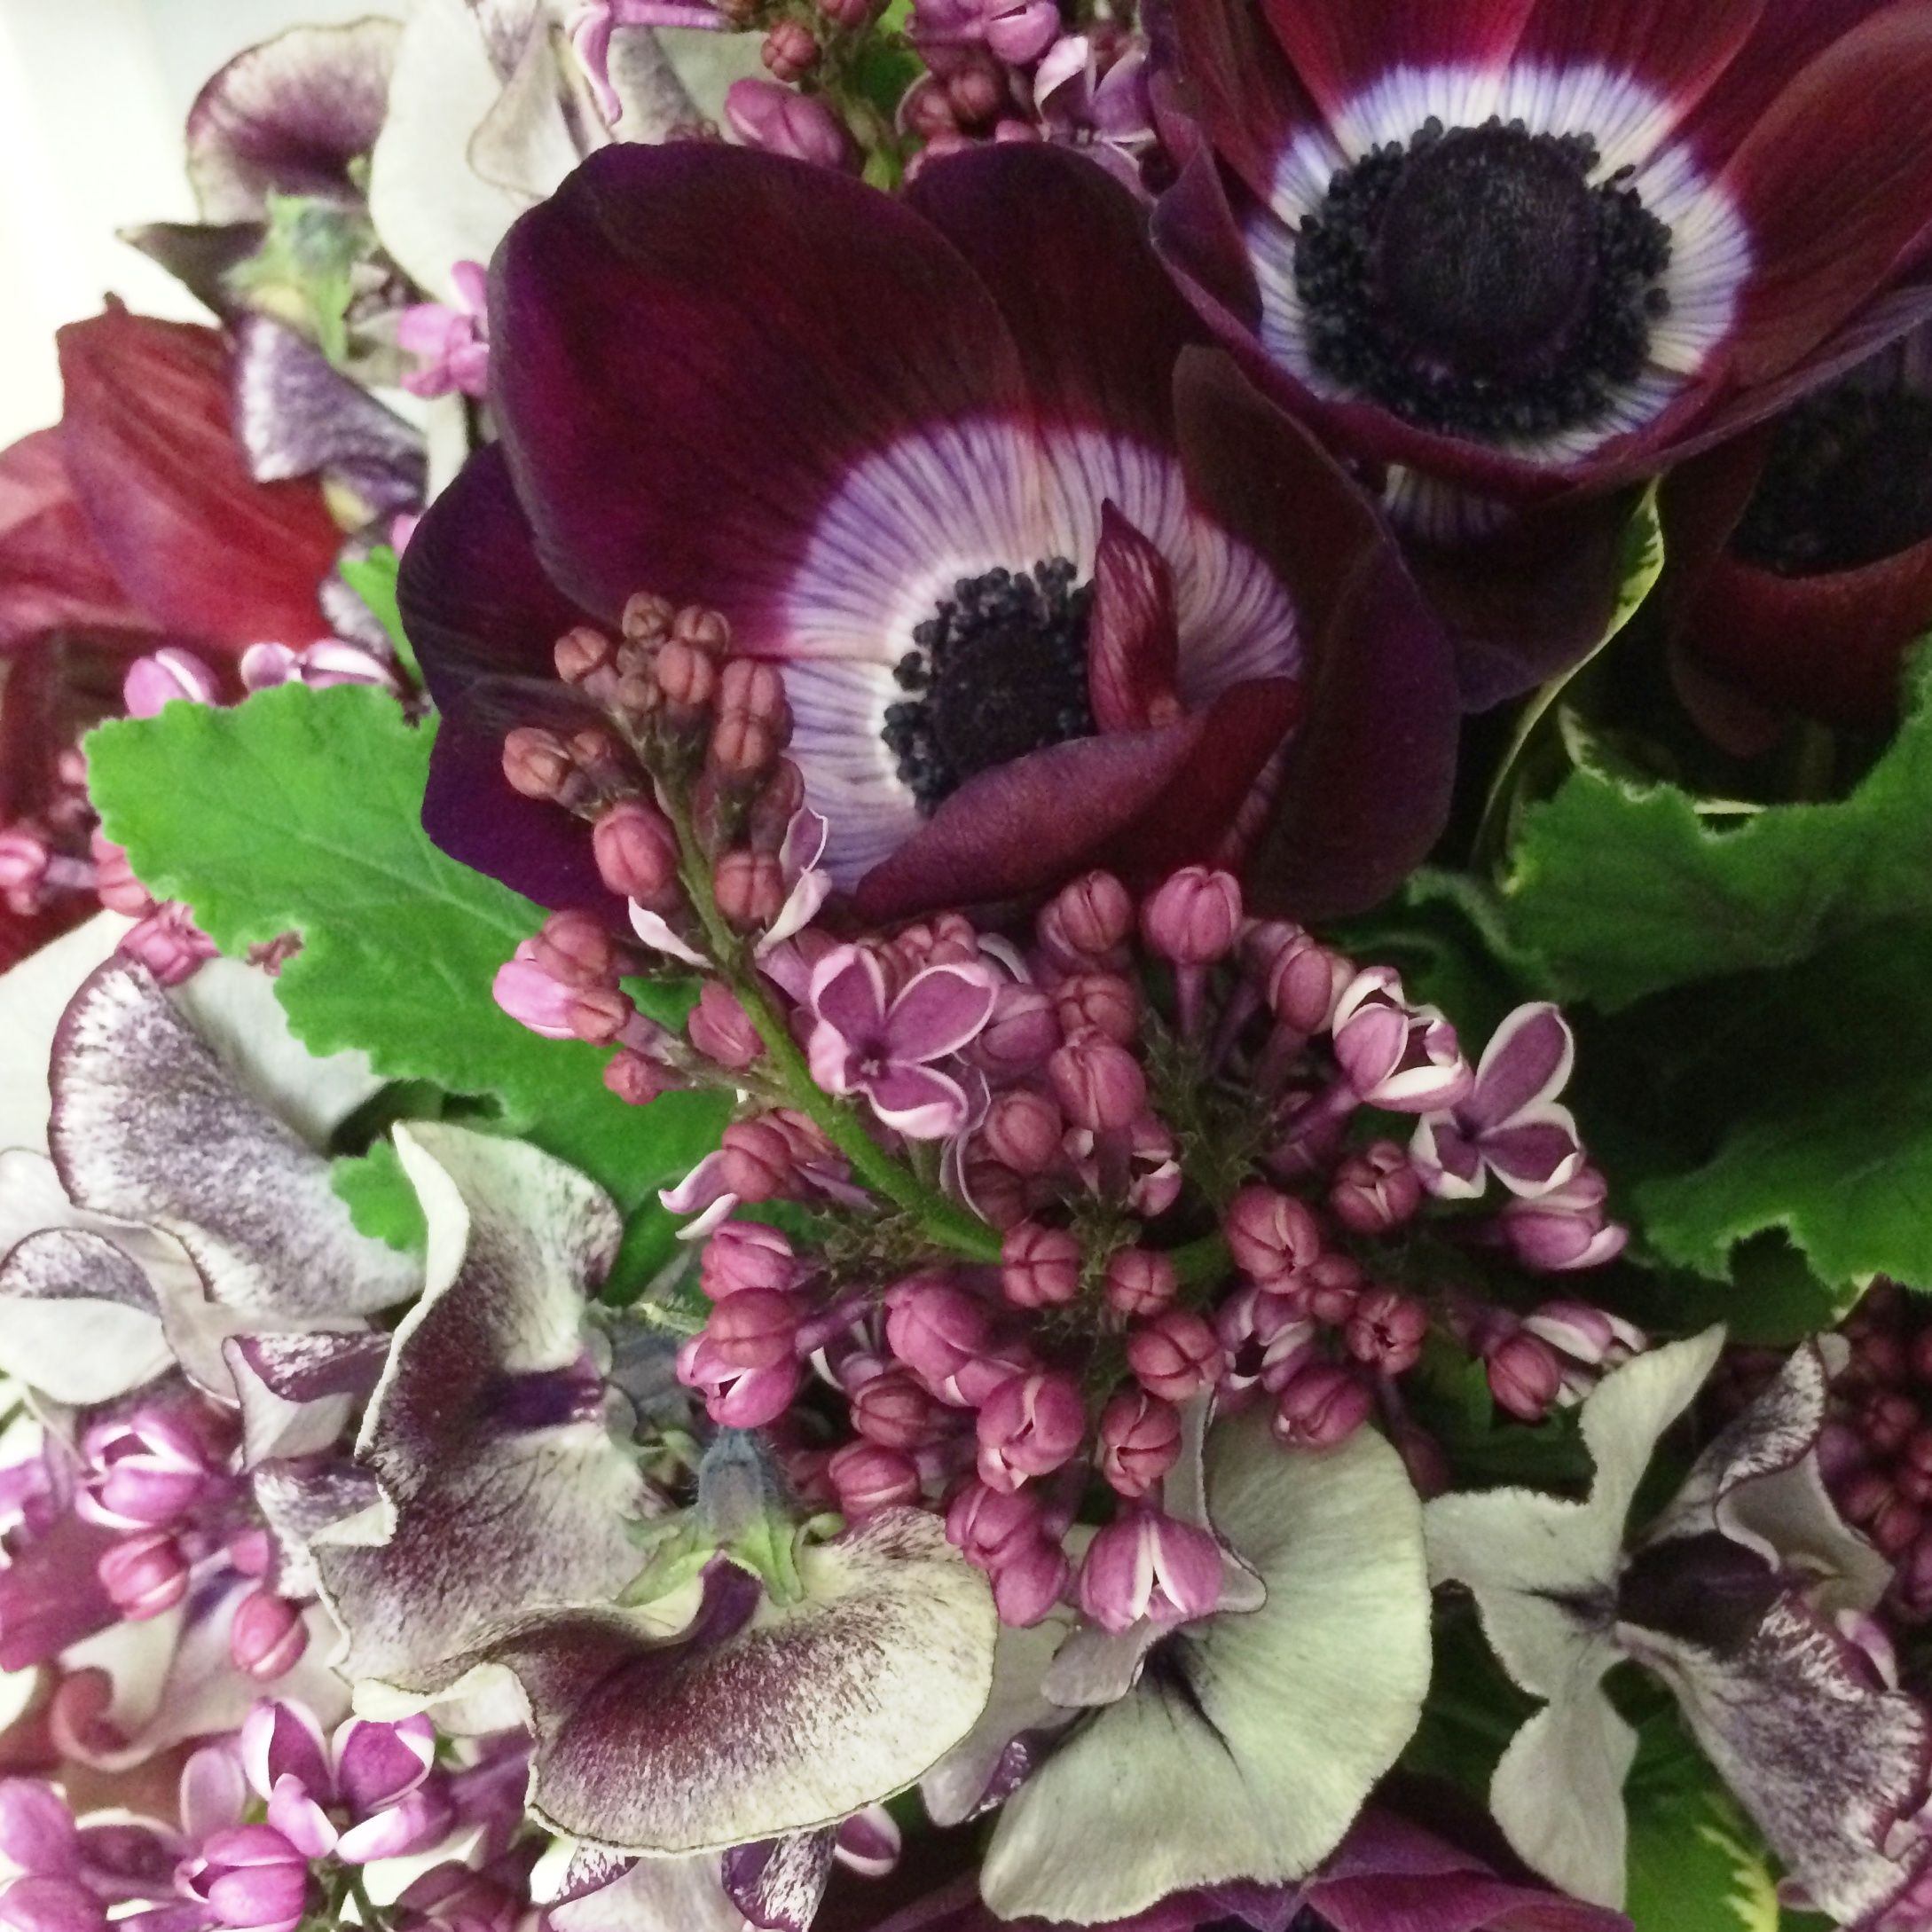 Color palette shades of purple with variegated lilac sweet peas color palette shades of purple with variegated lilac sweet peas and anemones fiori floral design seattle wa izmirmasajfo